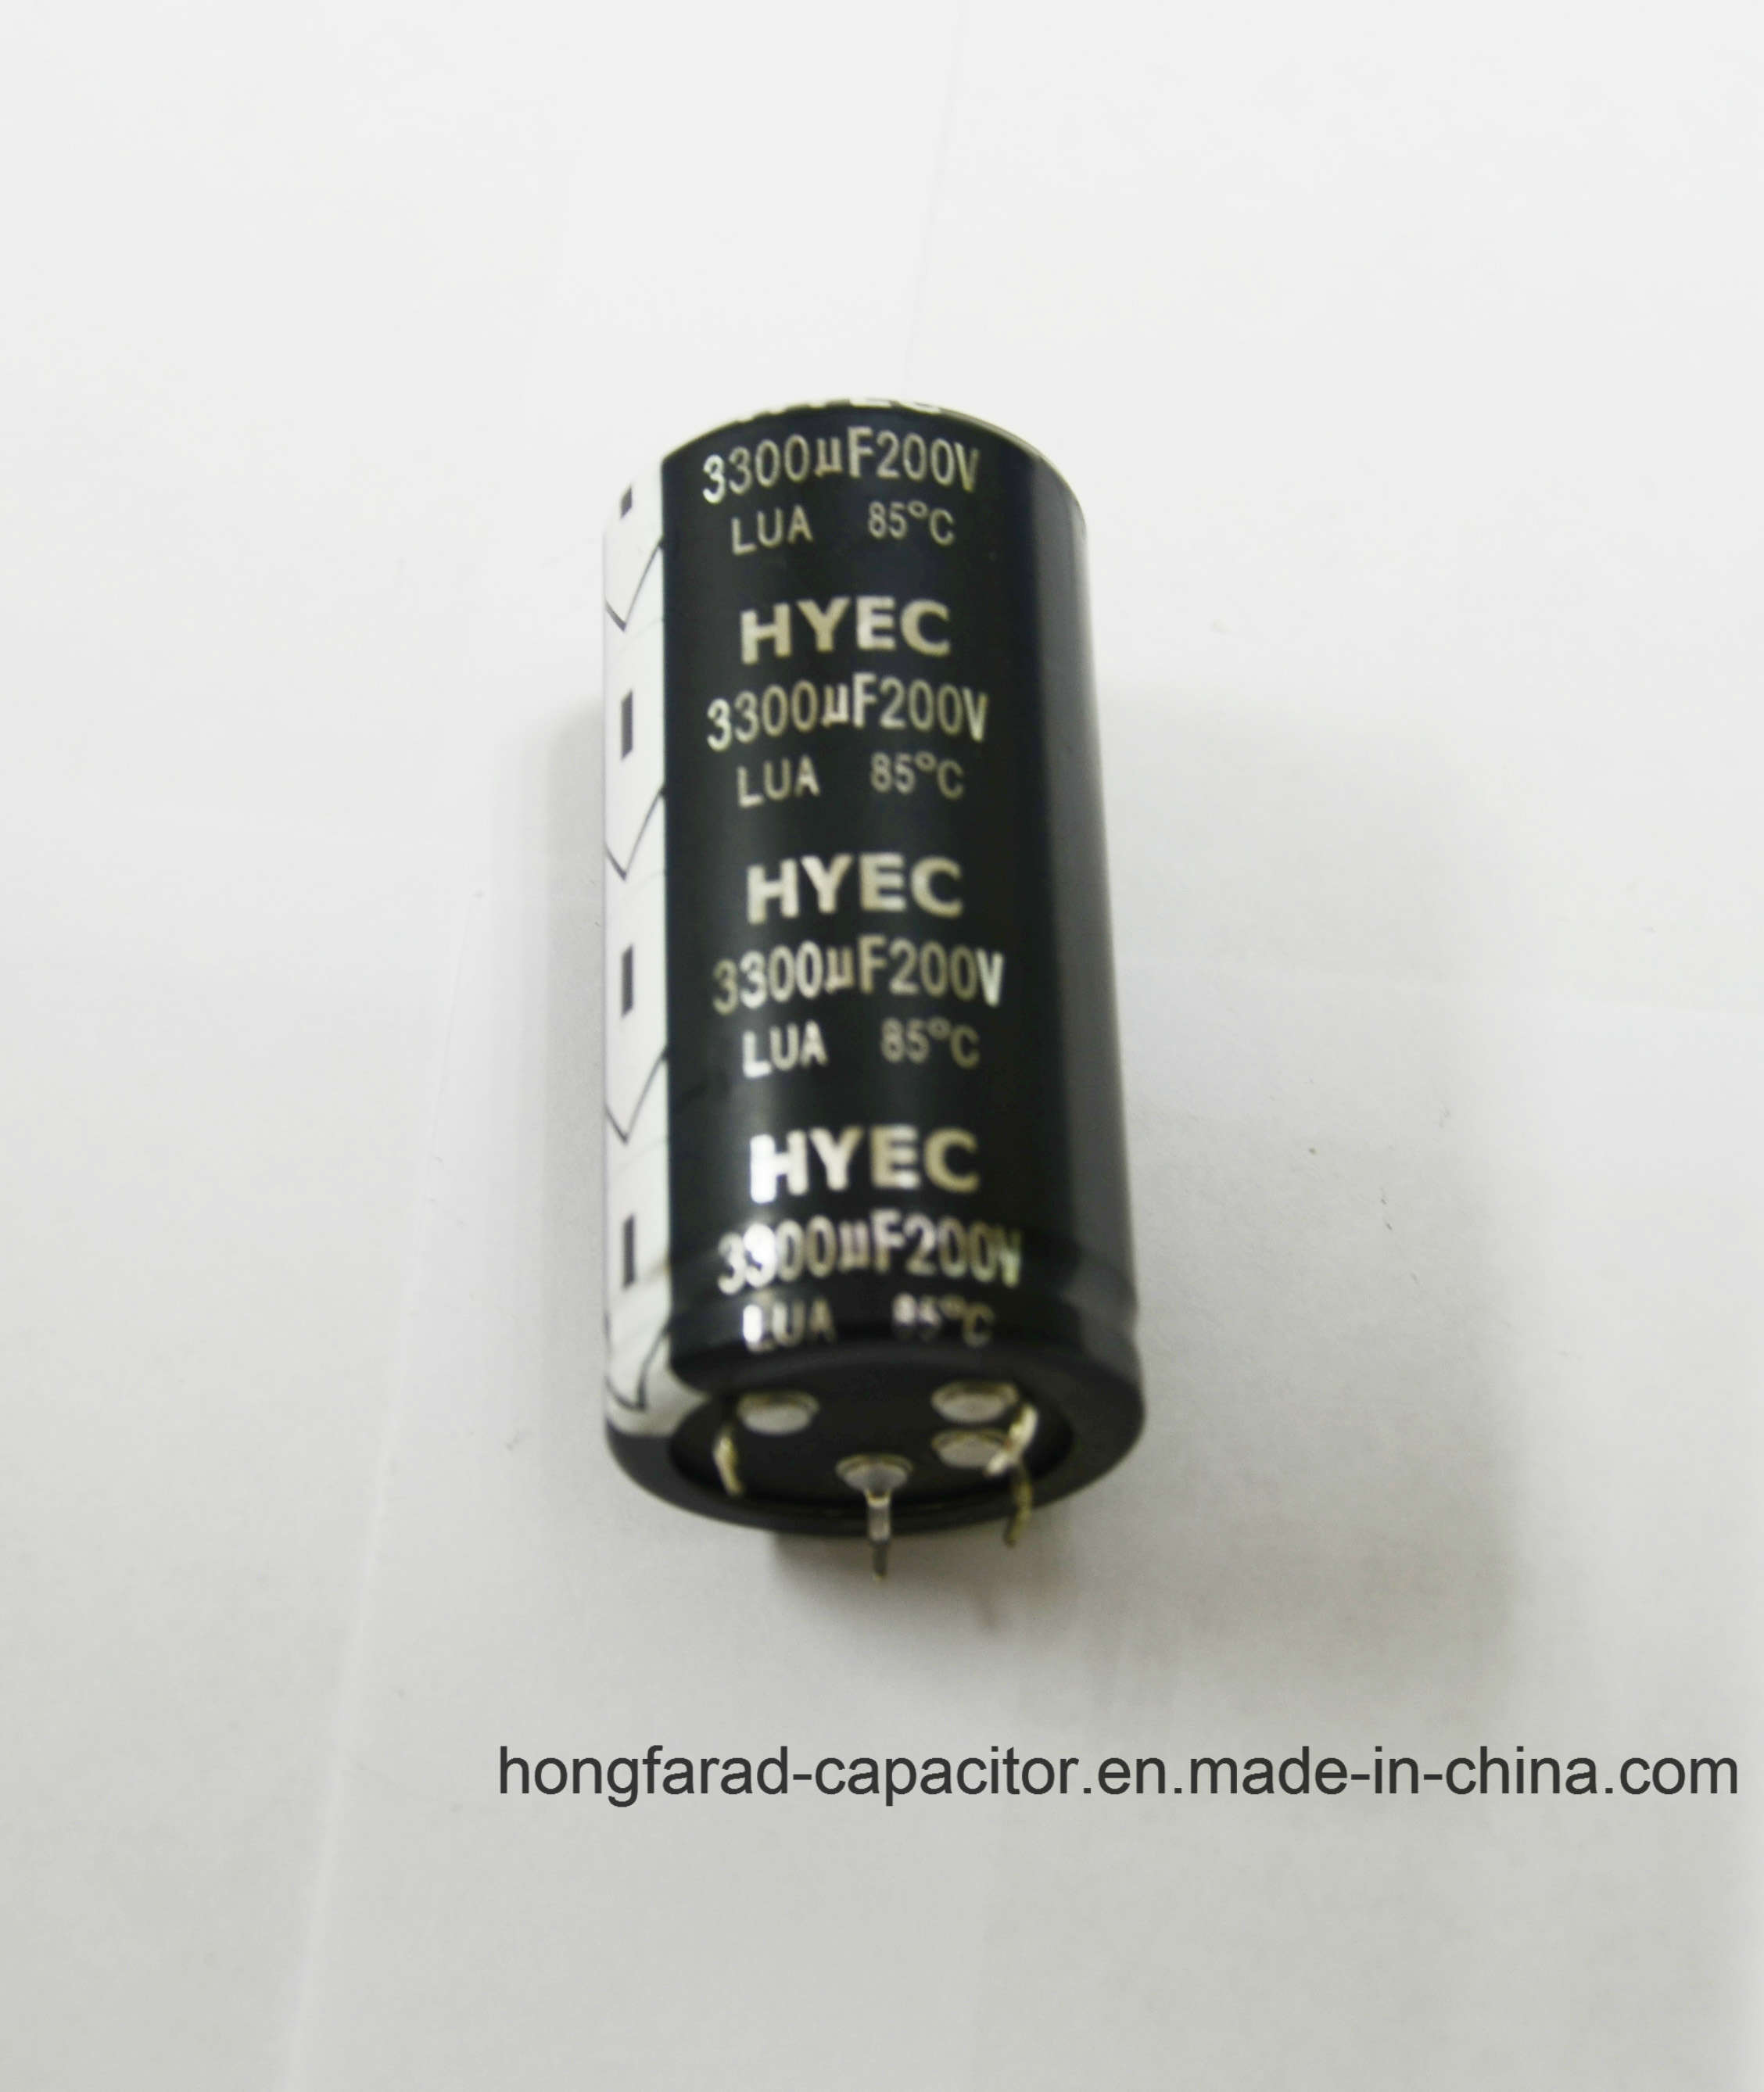 2000h 105c Lz Aluminum Electrolytic Capacitor for Aduio pictures & photos